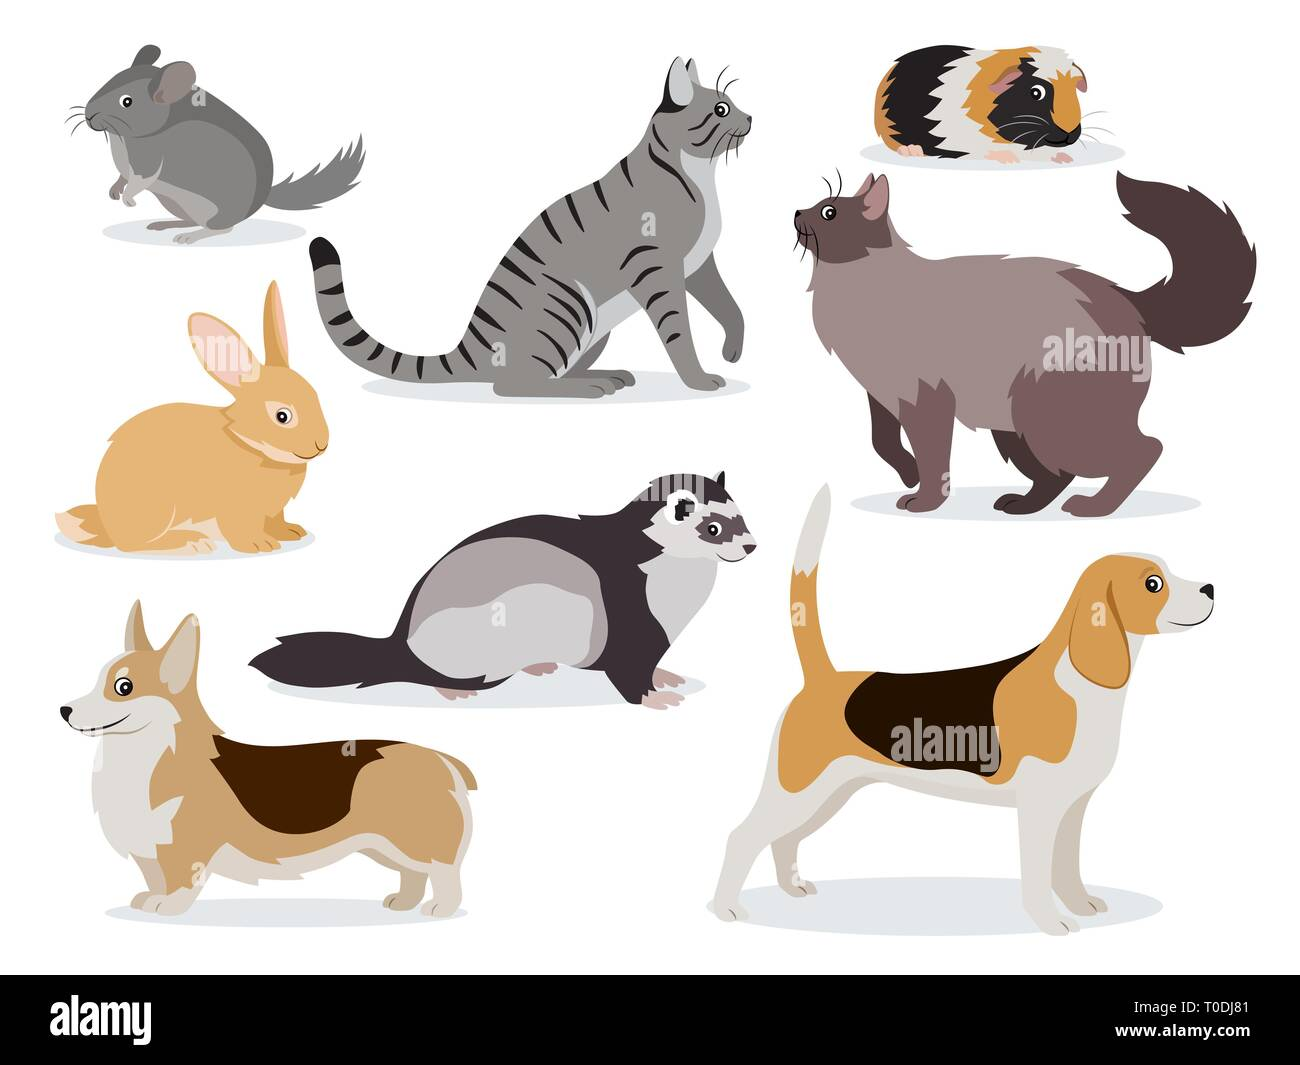 Pets icon set, cute gray chinchilla, fluffy ferret, smooth coated and domestic long-haired cats, corgi, beagle, dogs, rabbit, guinea pig isolated - Stock Vector